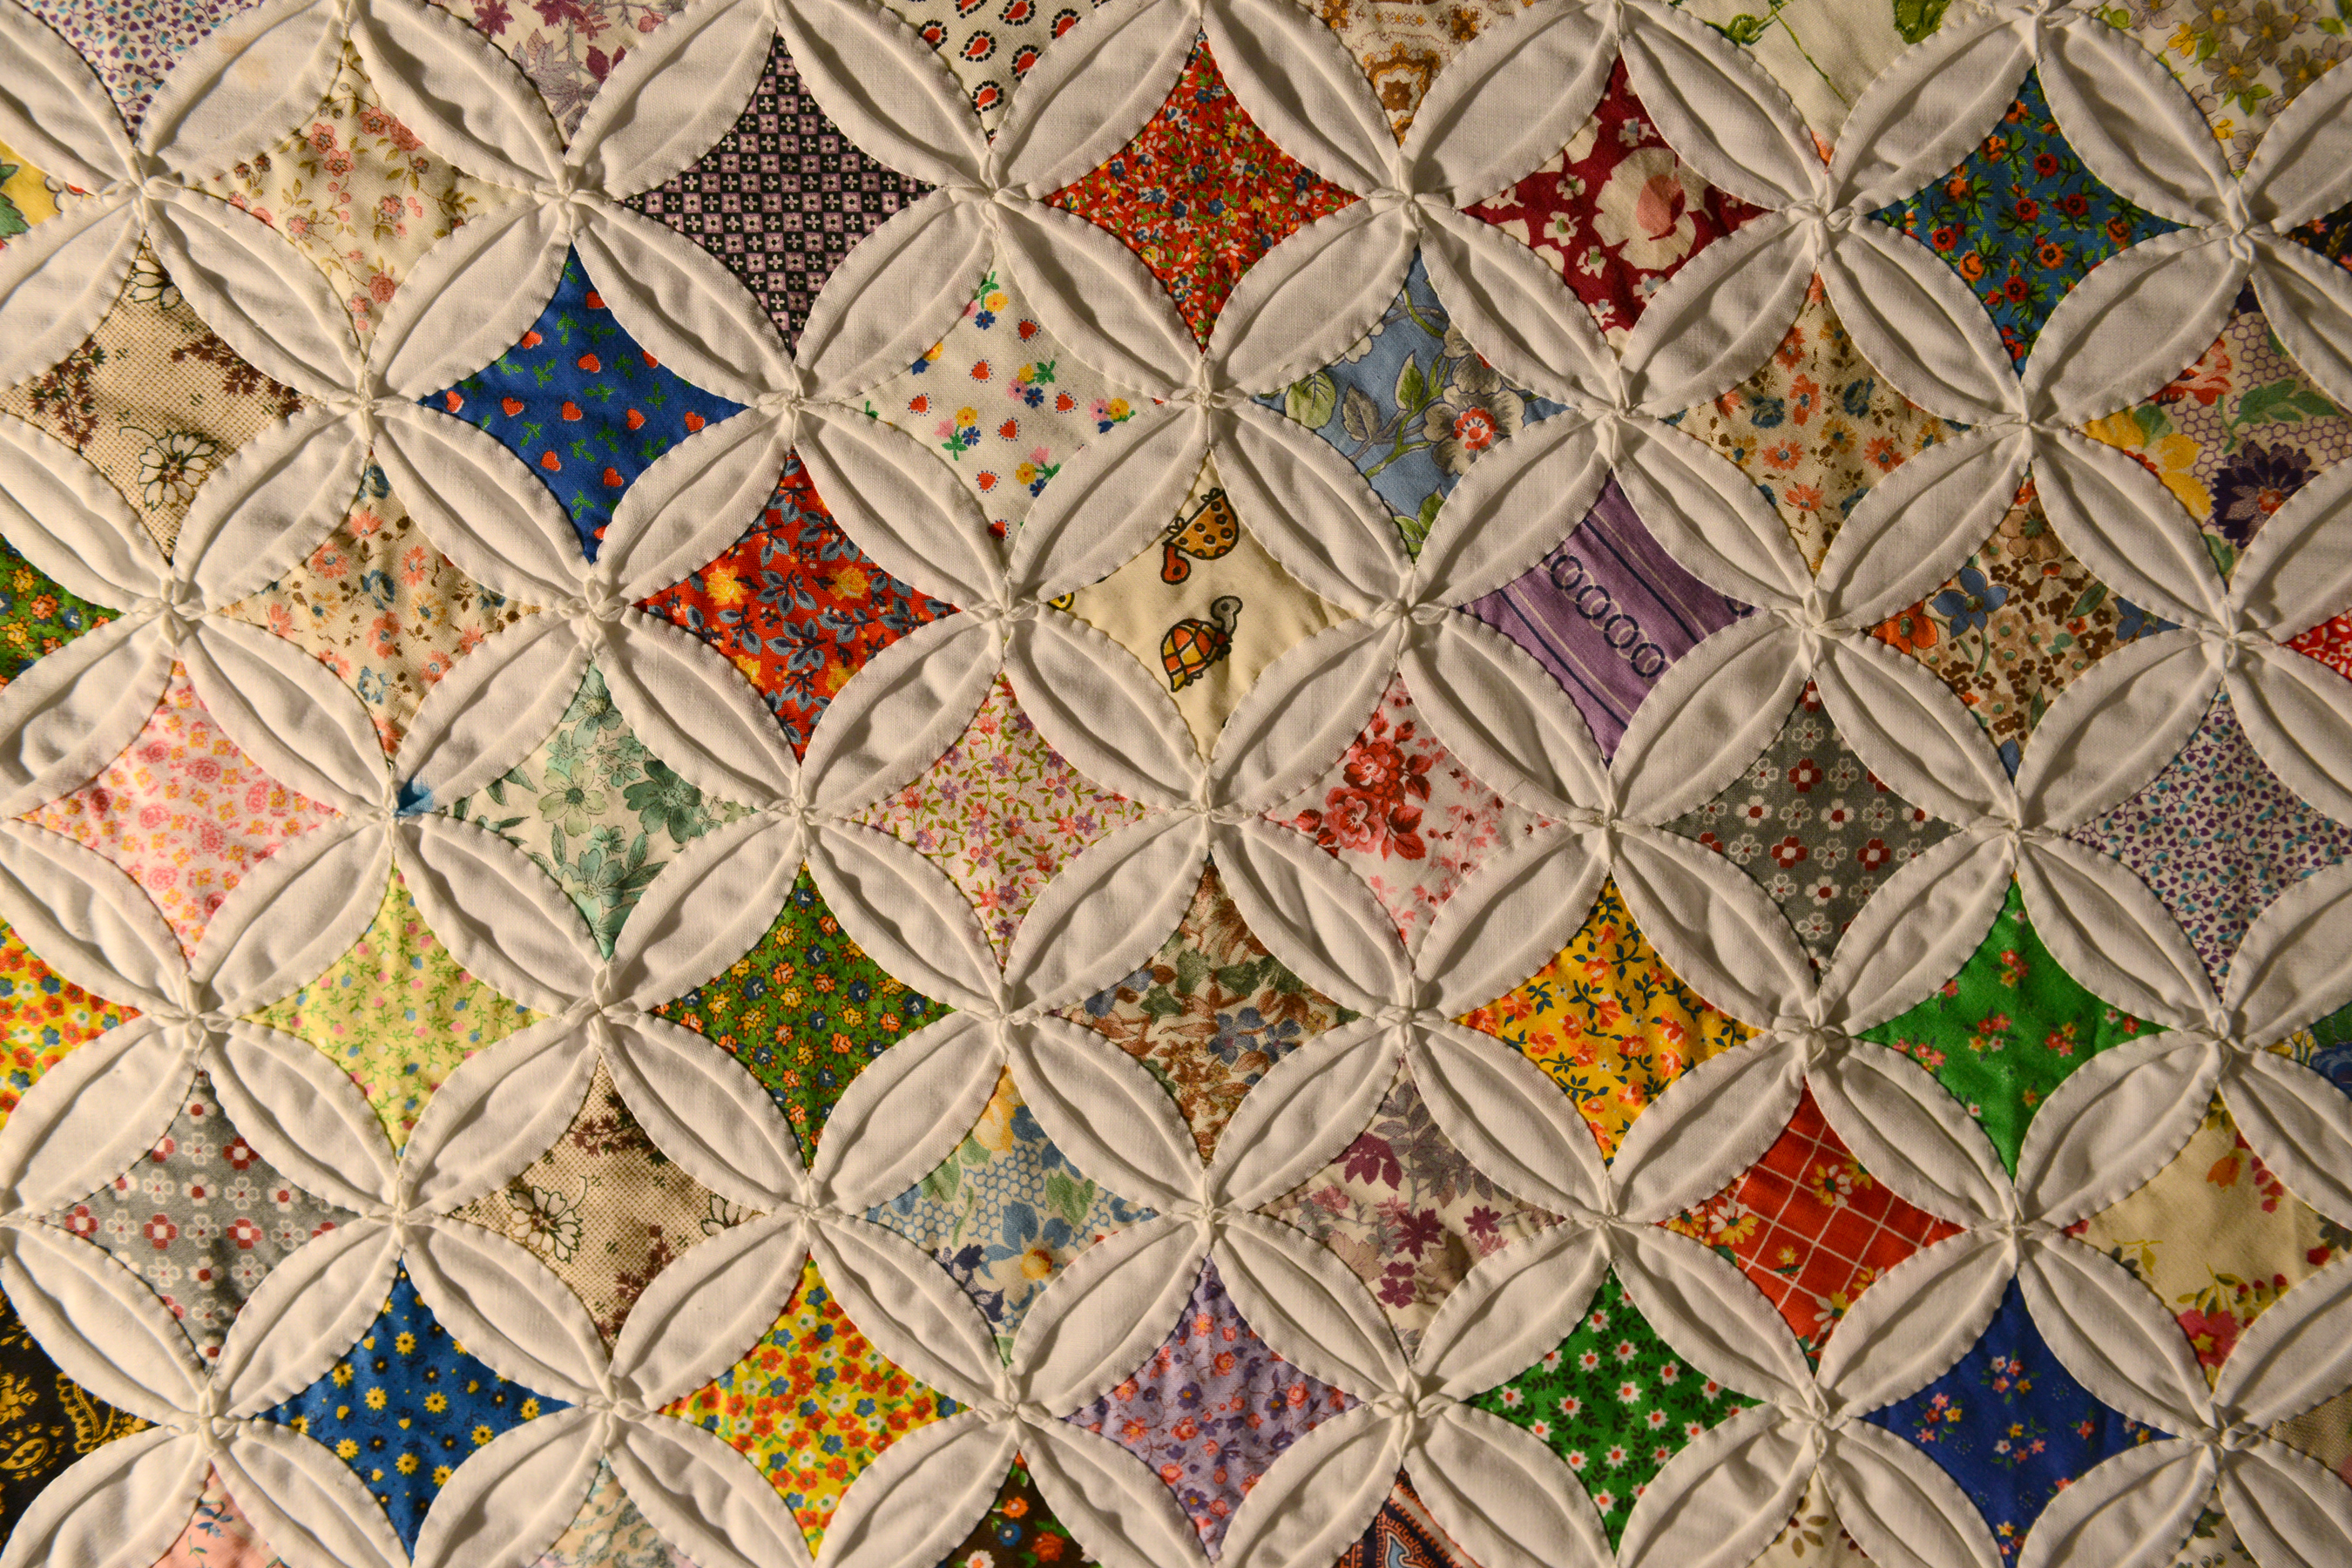 Detail of 1981 cathedral window quilt | Virginia Historical ... : pattern for cathedral window quilt - Adamdwight.com